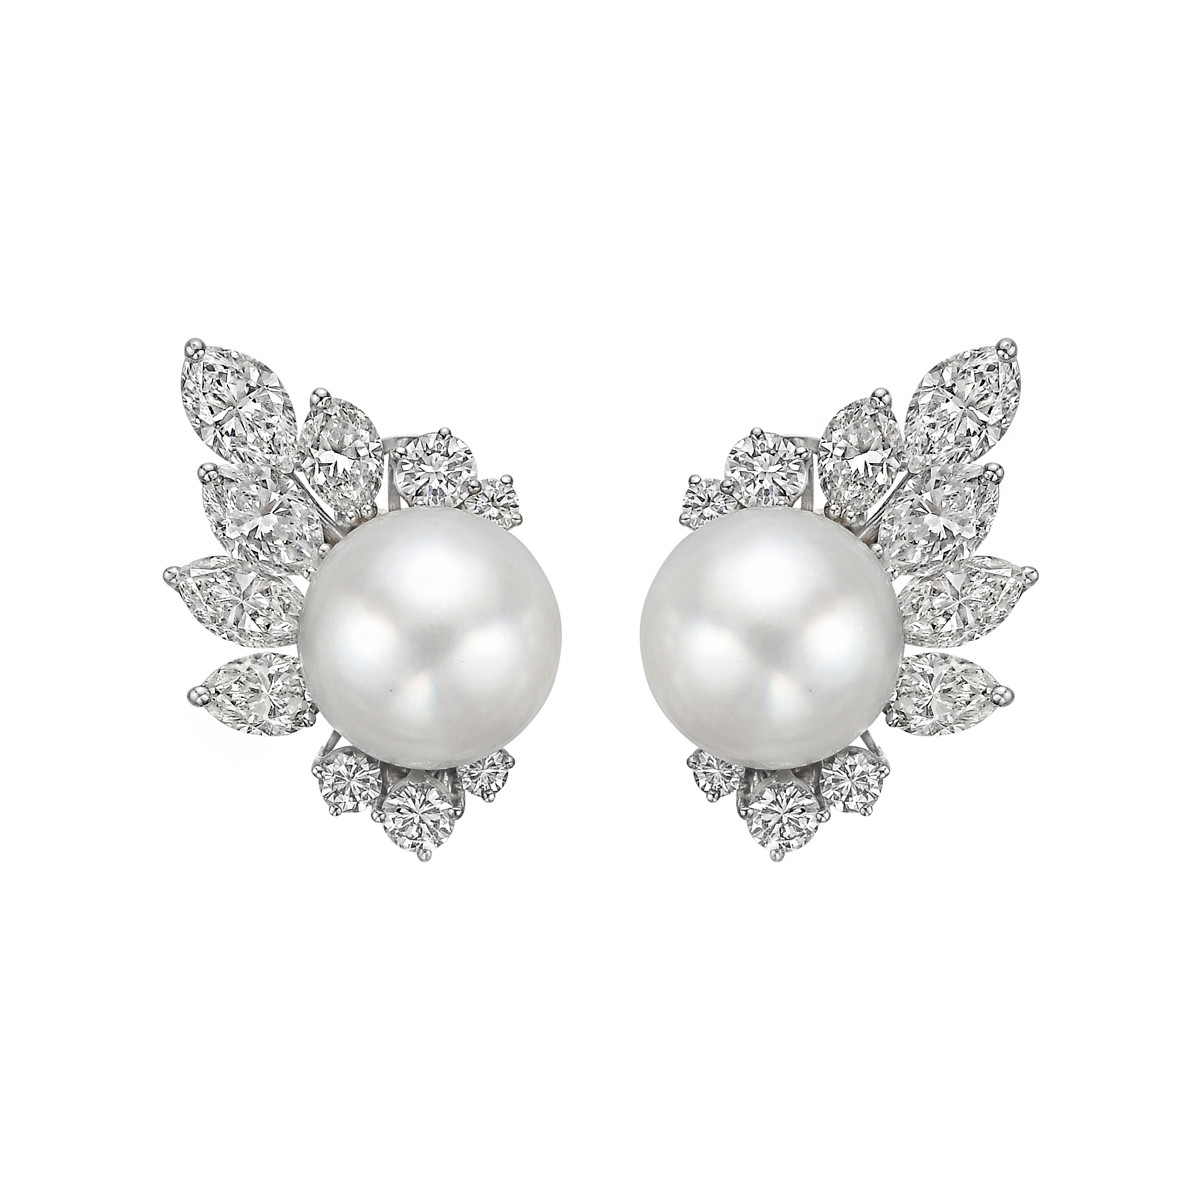 South Sea Pearl & Diamond Cluster Earrings